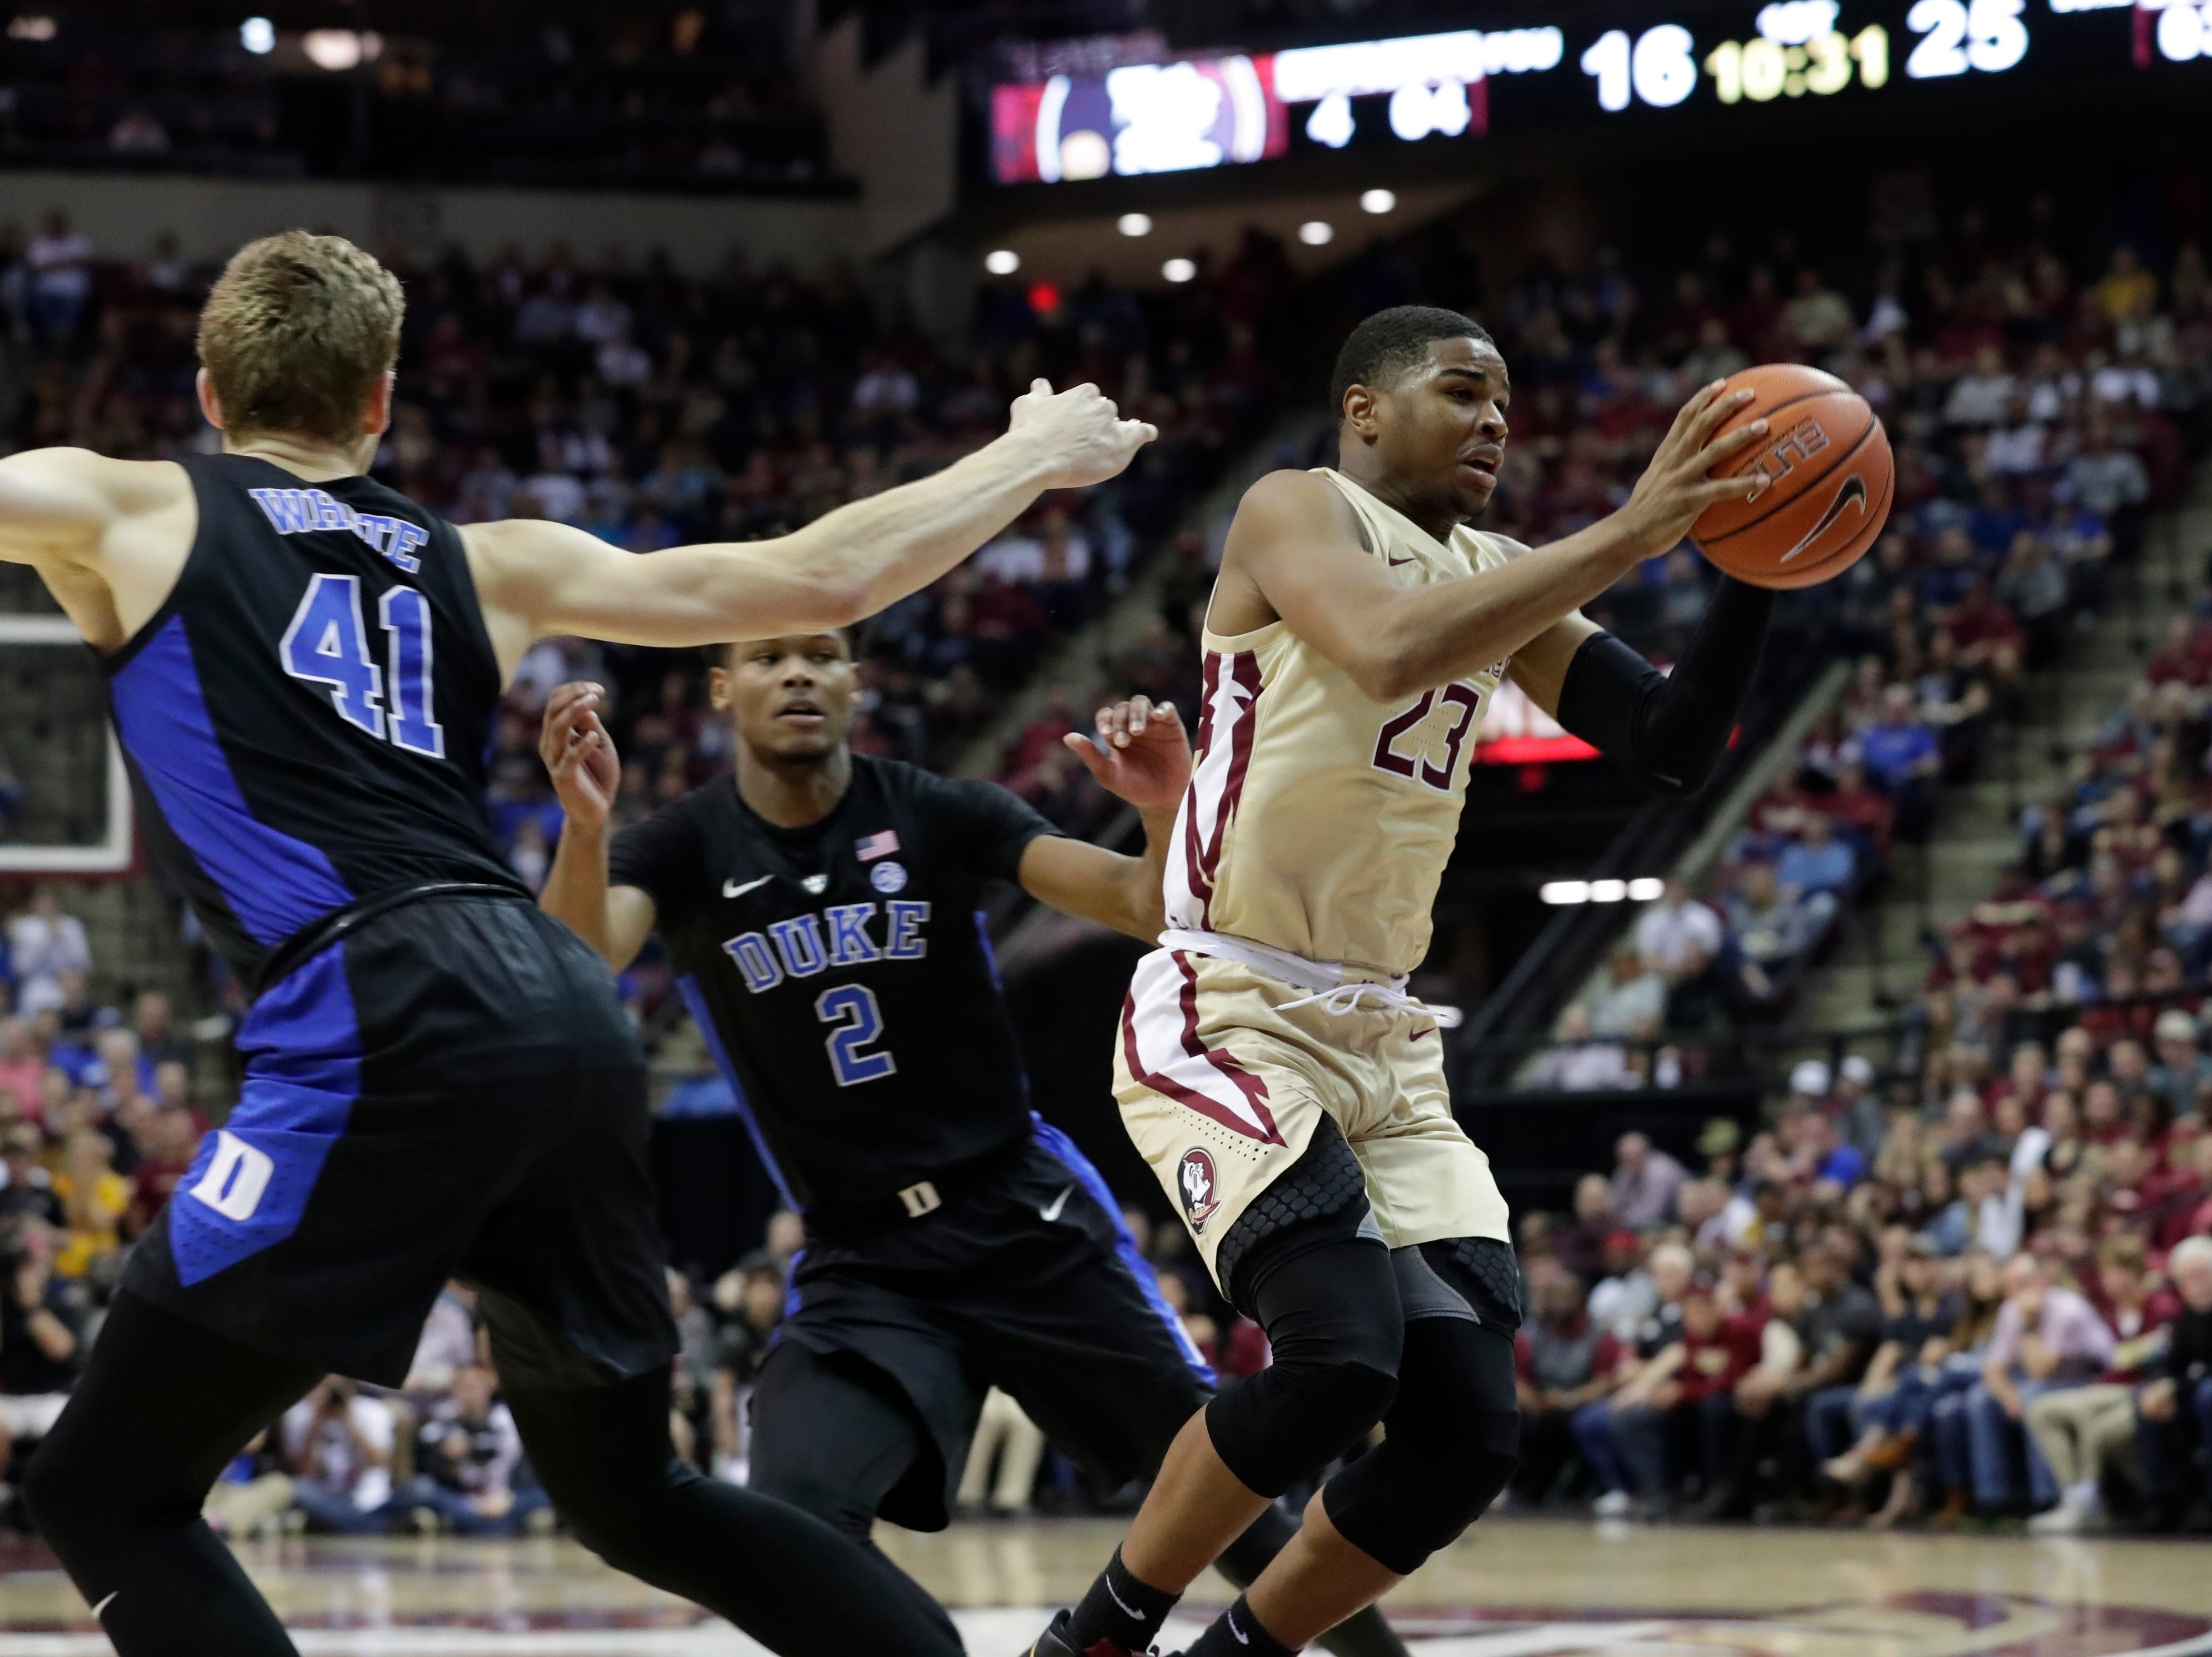 Ranked 13 in the ACC, the Florida State Seminoles host the number 1 team, the Duke Blue Devils, at the Tucker Civic Center, Saturday, Jan. 12, 2019. Florida State Seminoles guard M.J. Walker (23) makes his way around Duke Blue Devils forward Jack White (41) and Duke Blue Devils forward Cam Reddish (2) to drive the ball to the hoop.